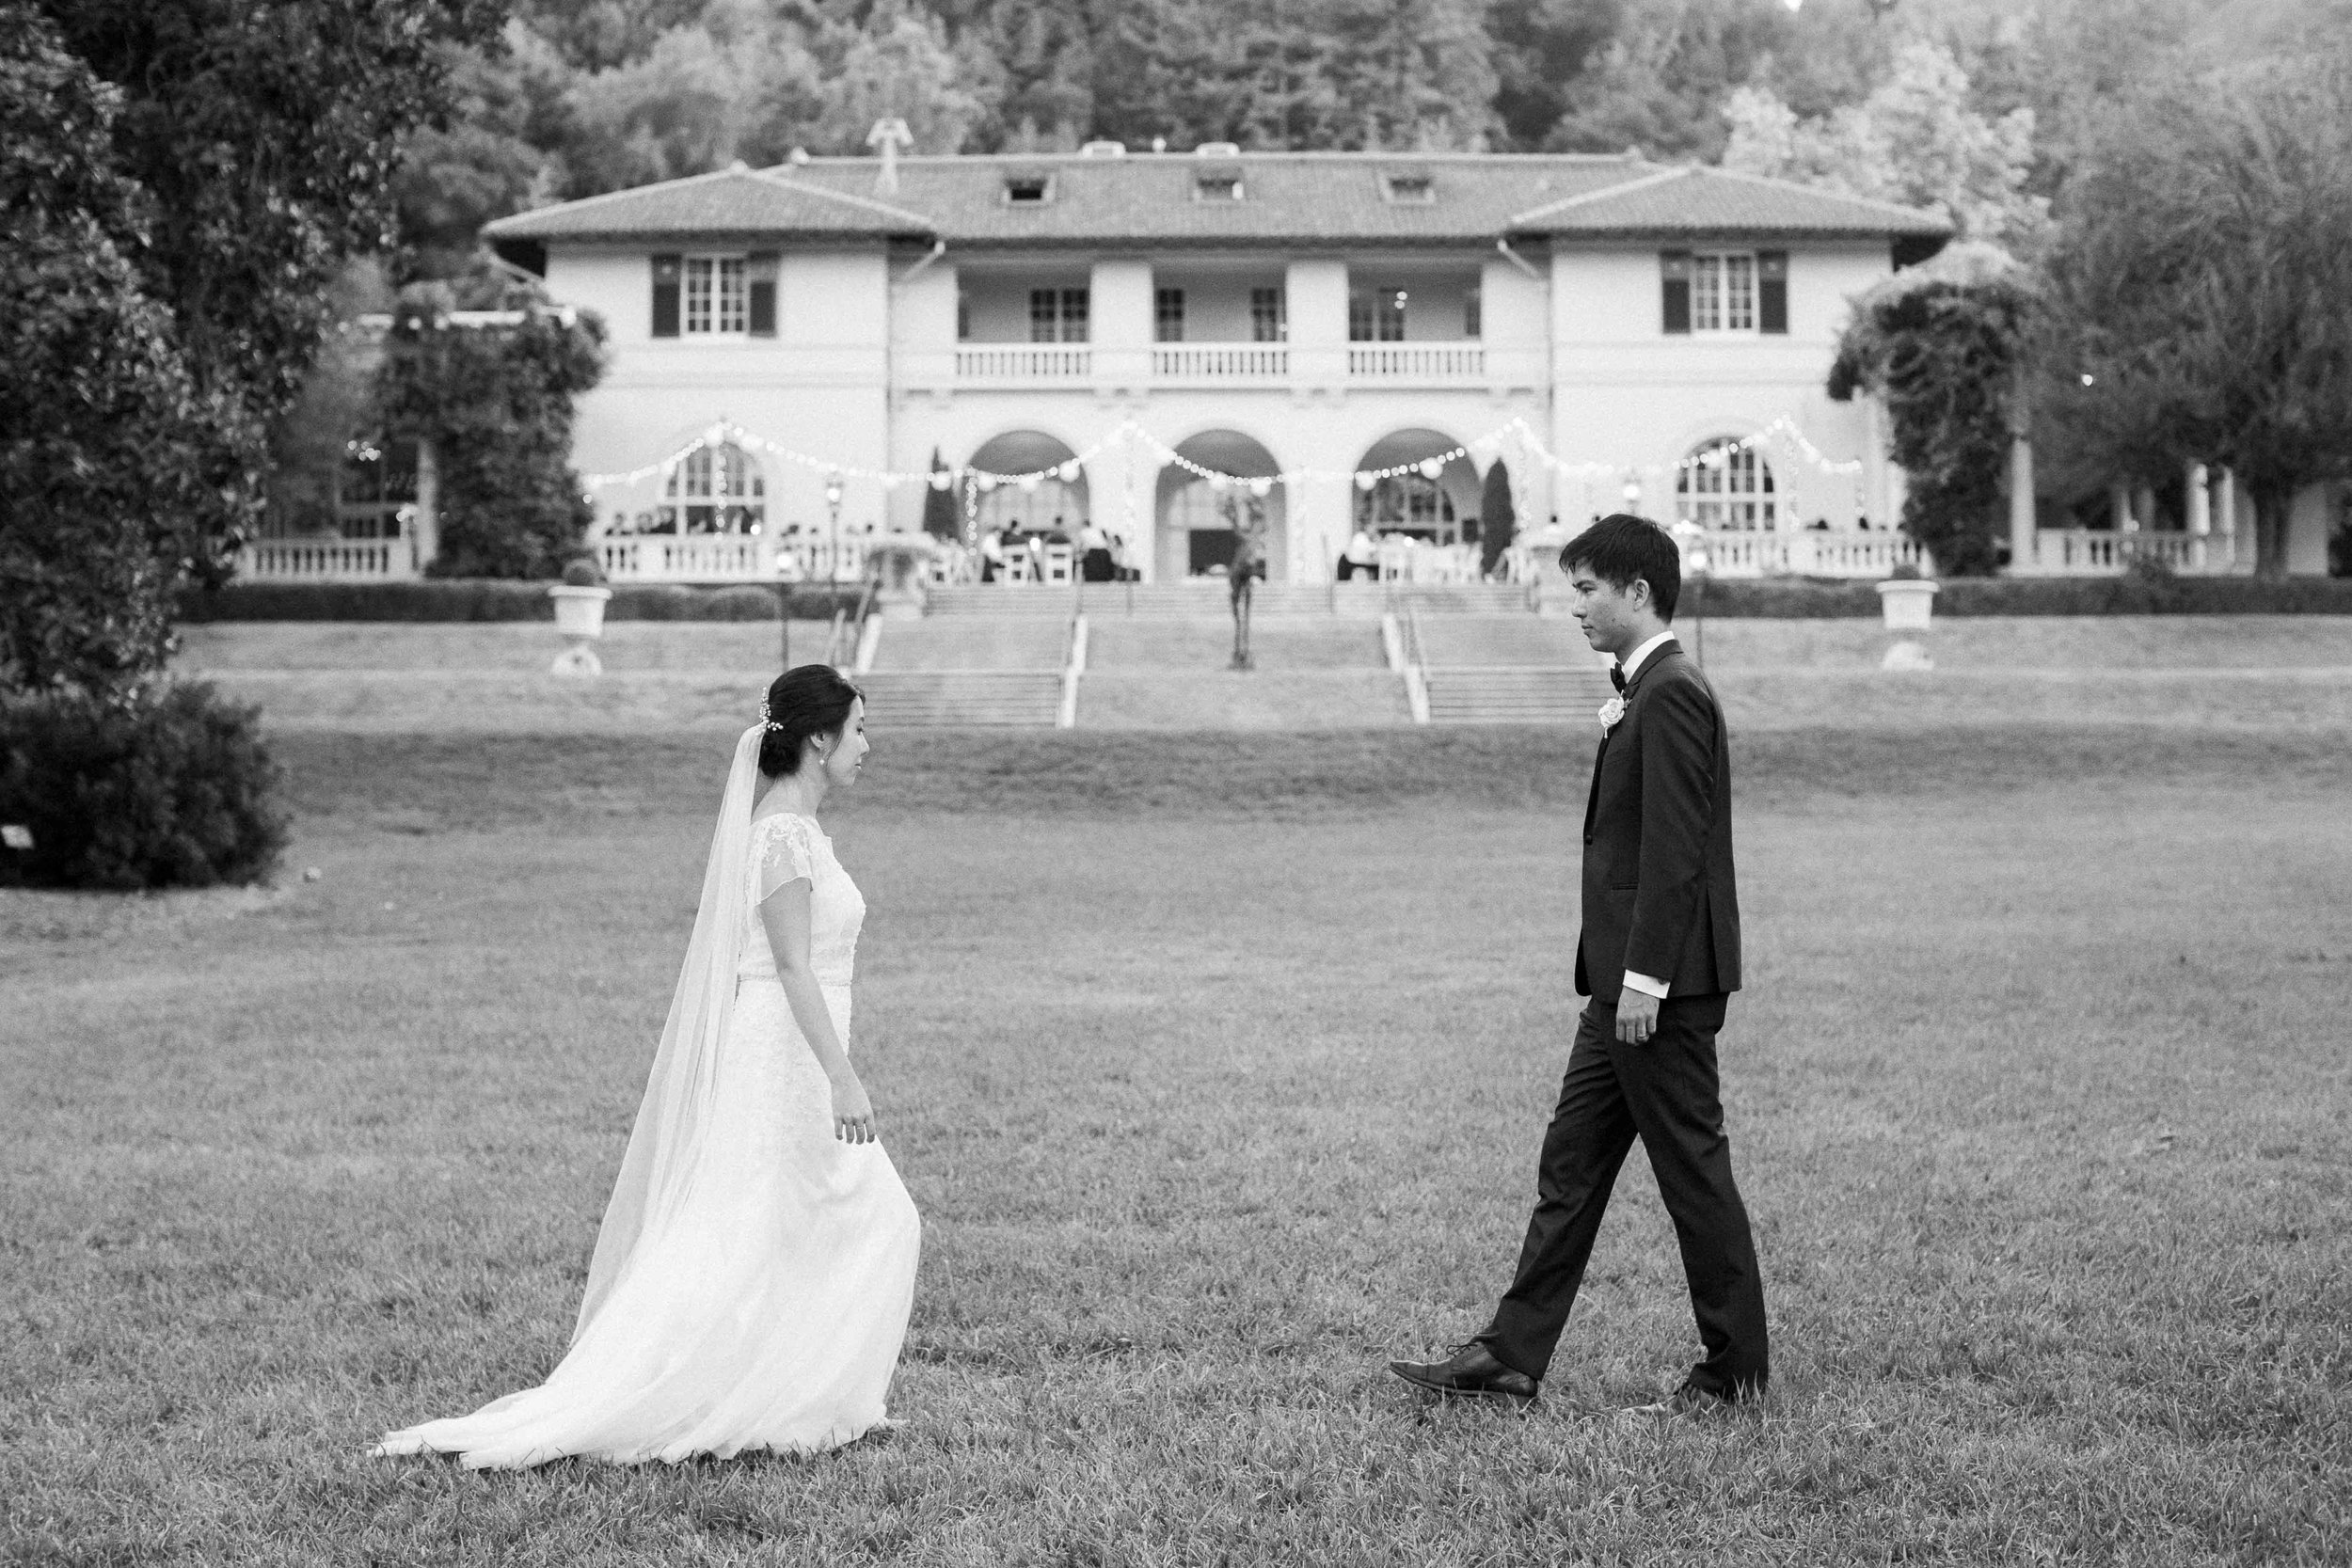 Villa_Montalvo_Wedding_Photographer_Videographer_San_Francisco189.jpg